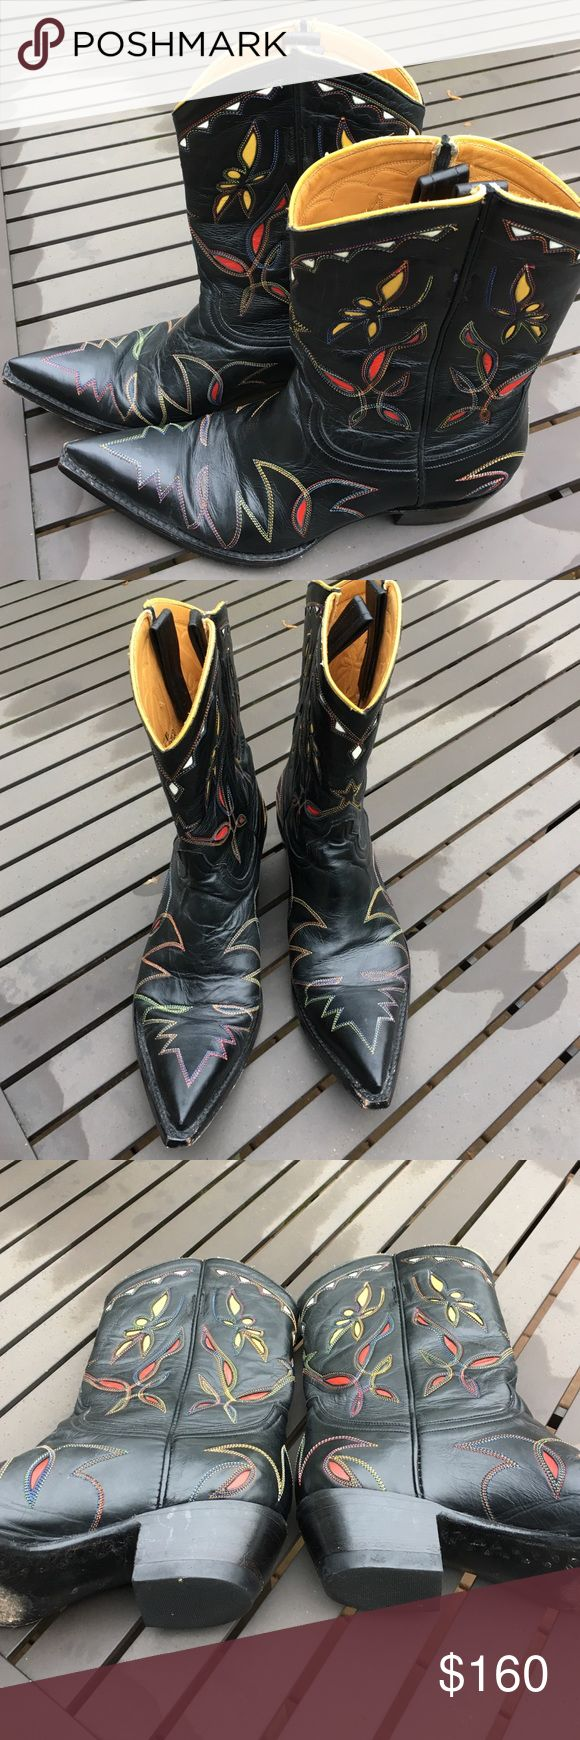 Old Gringo Cowboy Boots 7B These great Old Gringo were only worn a few times. The colorful inserted pattern and colored stitching makes these super special. Old Gringo Shoes Heeled Boots